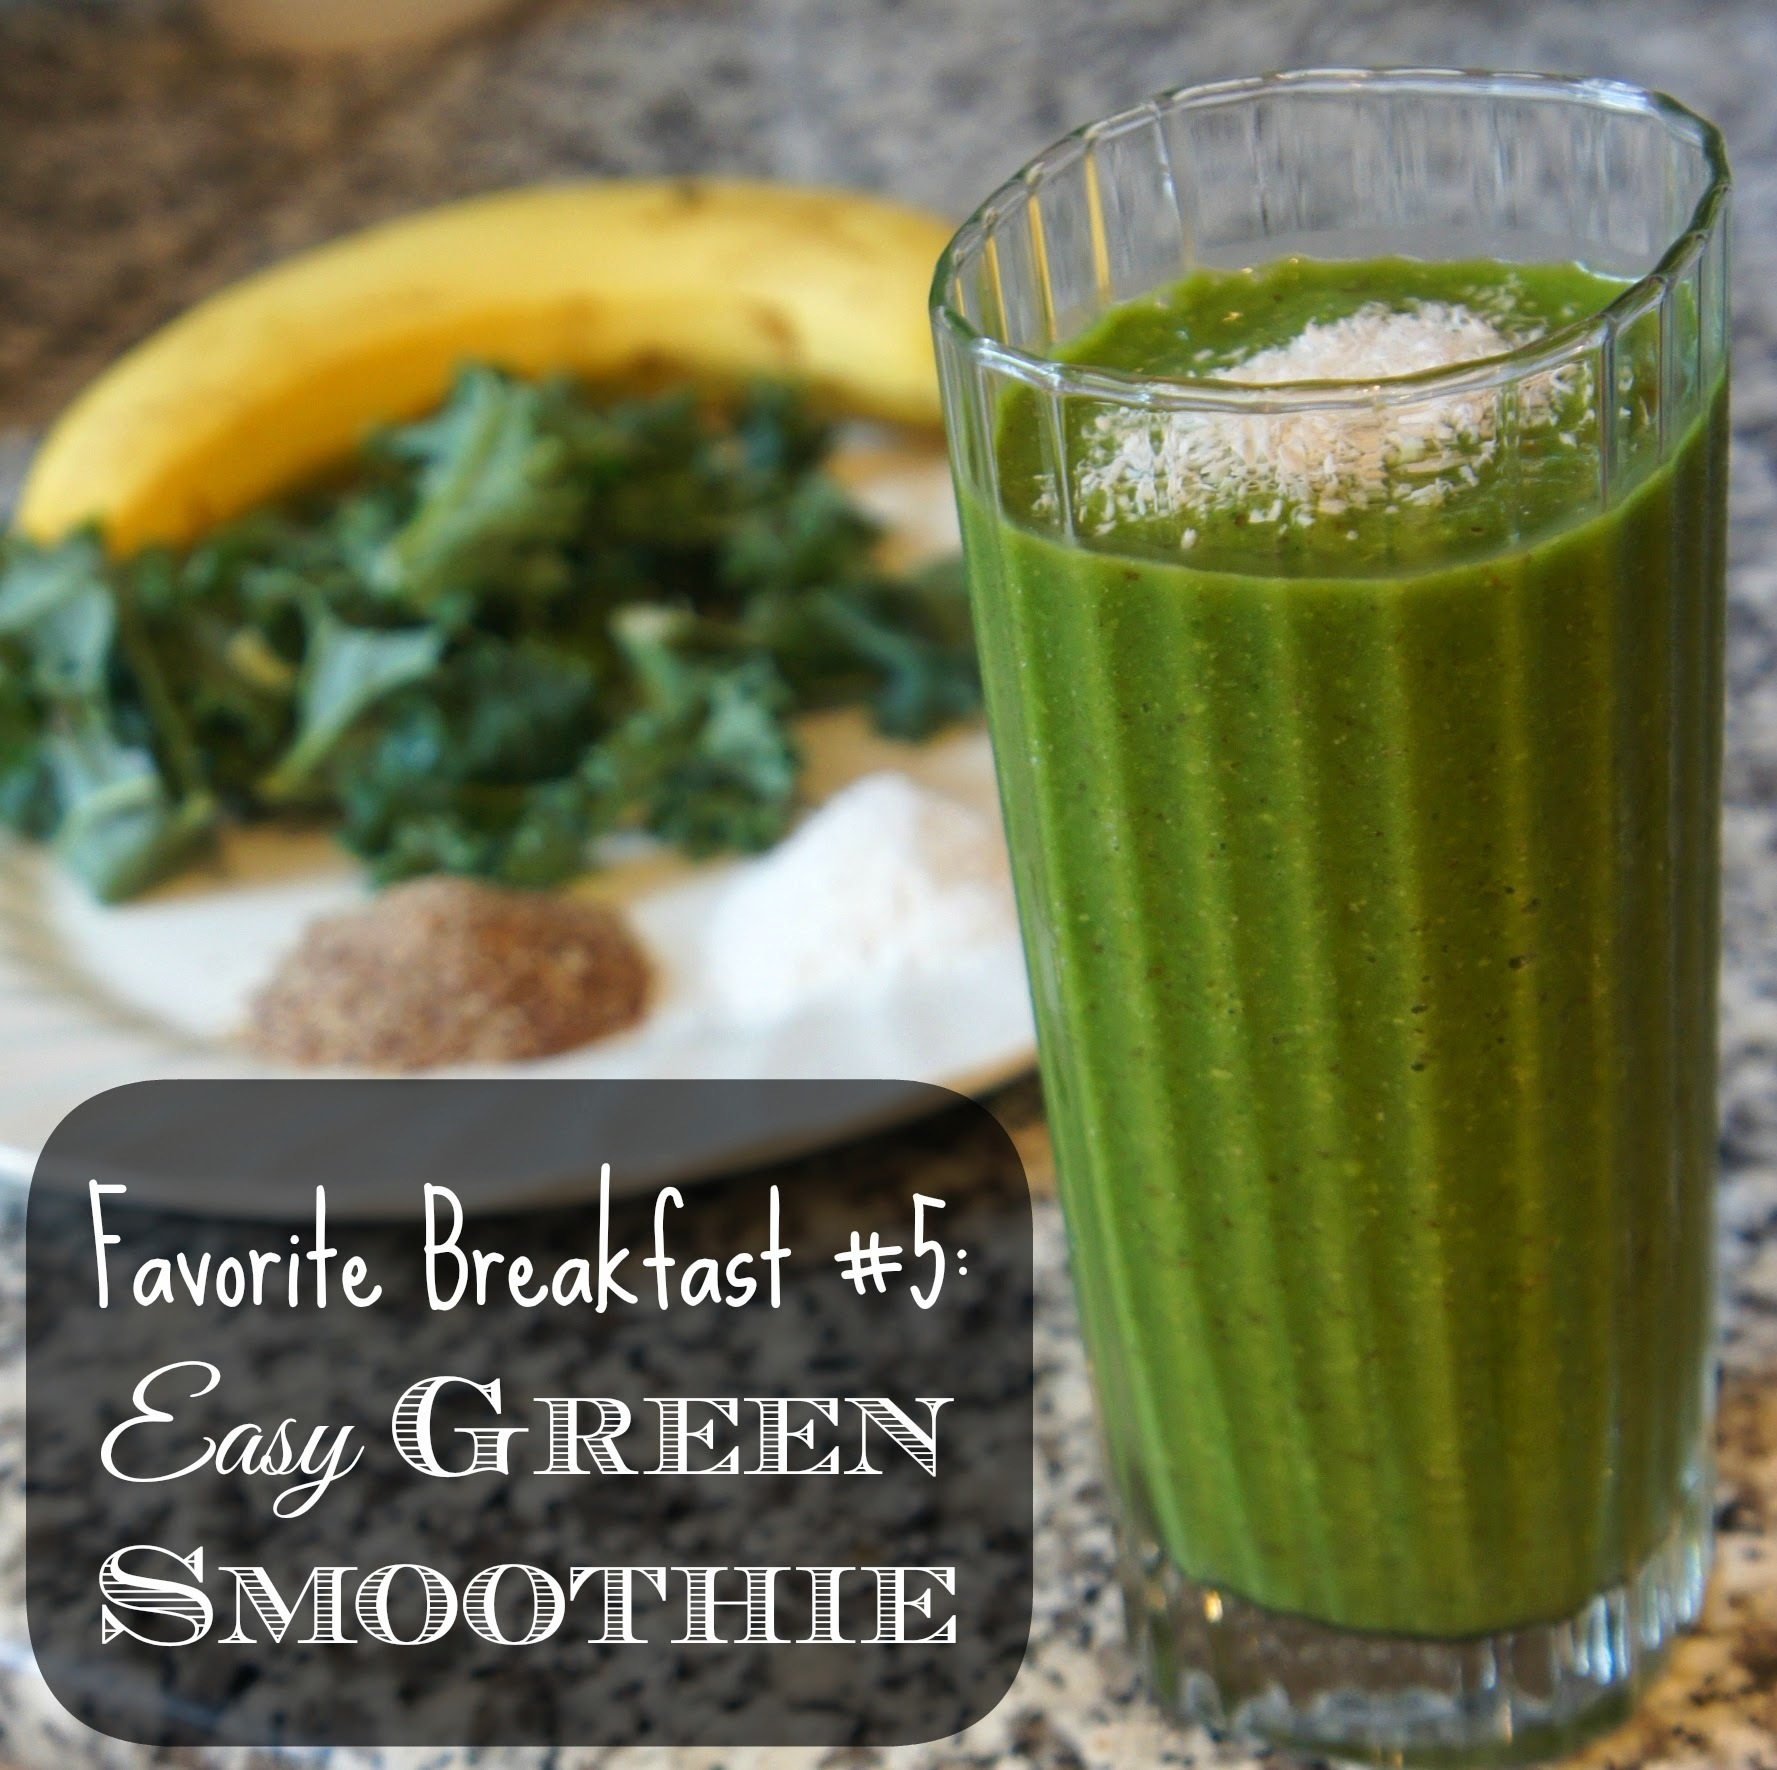 Favorite Breakfast #5: Easy Green Smoothie!